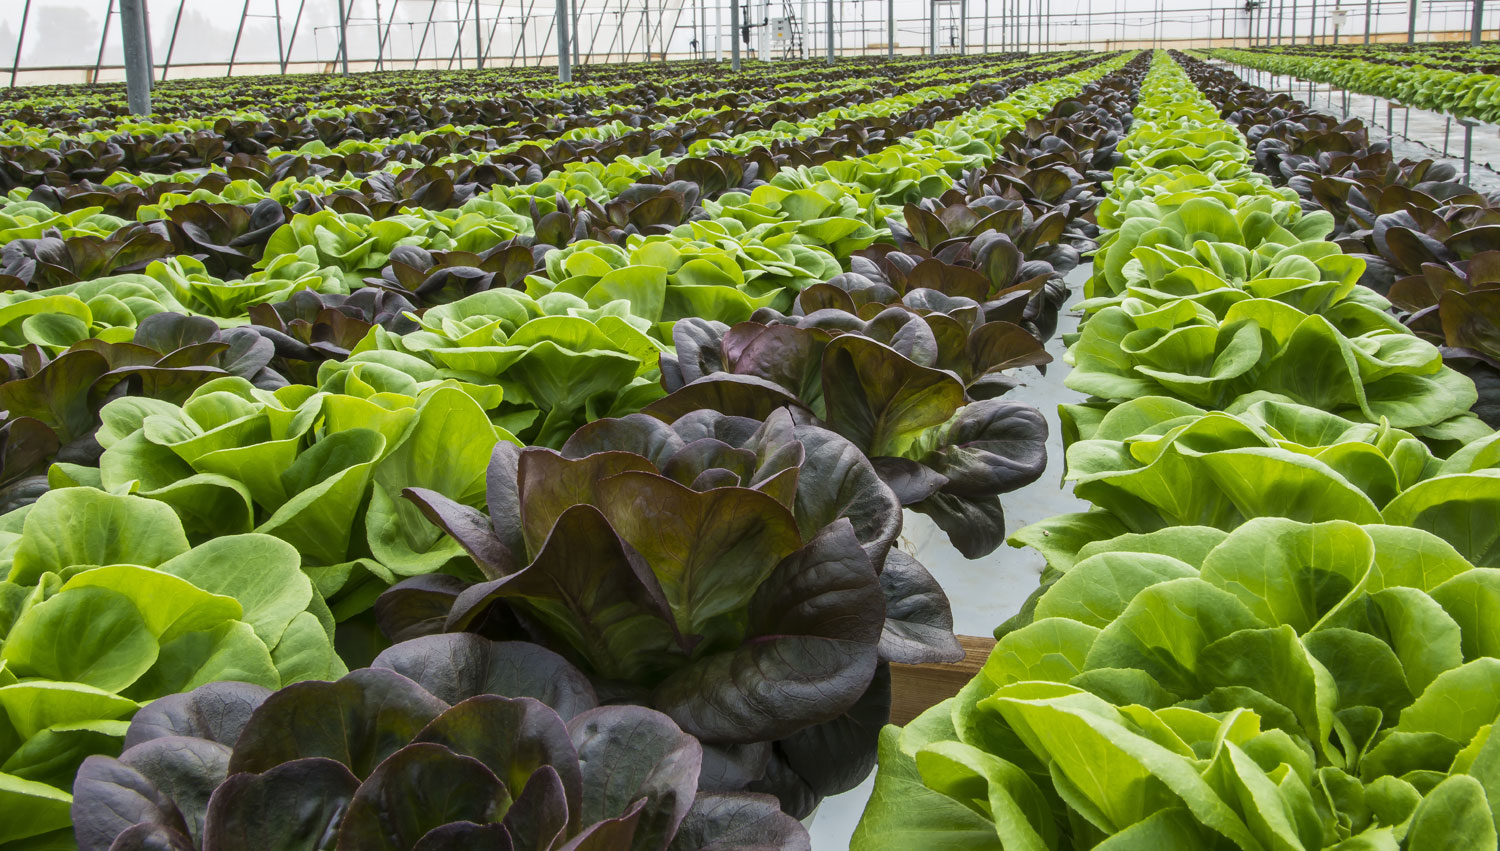 Horticulture and The Environment